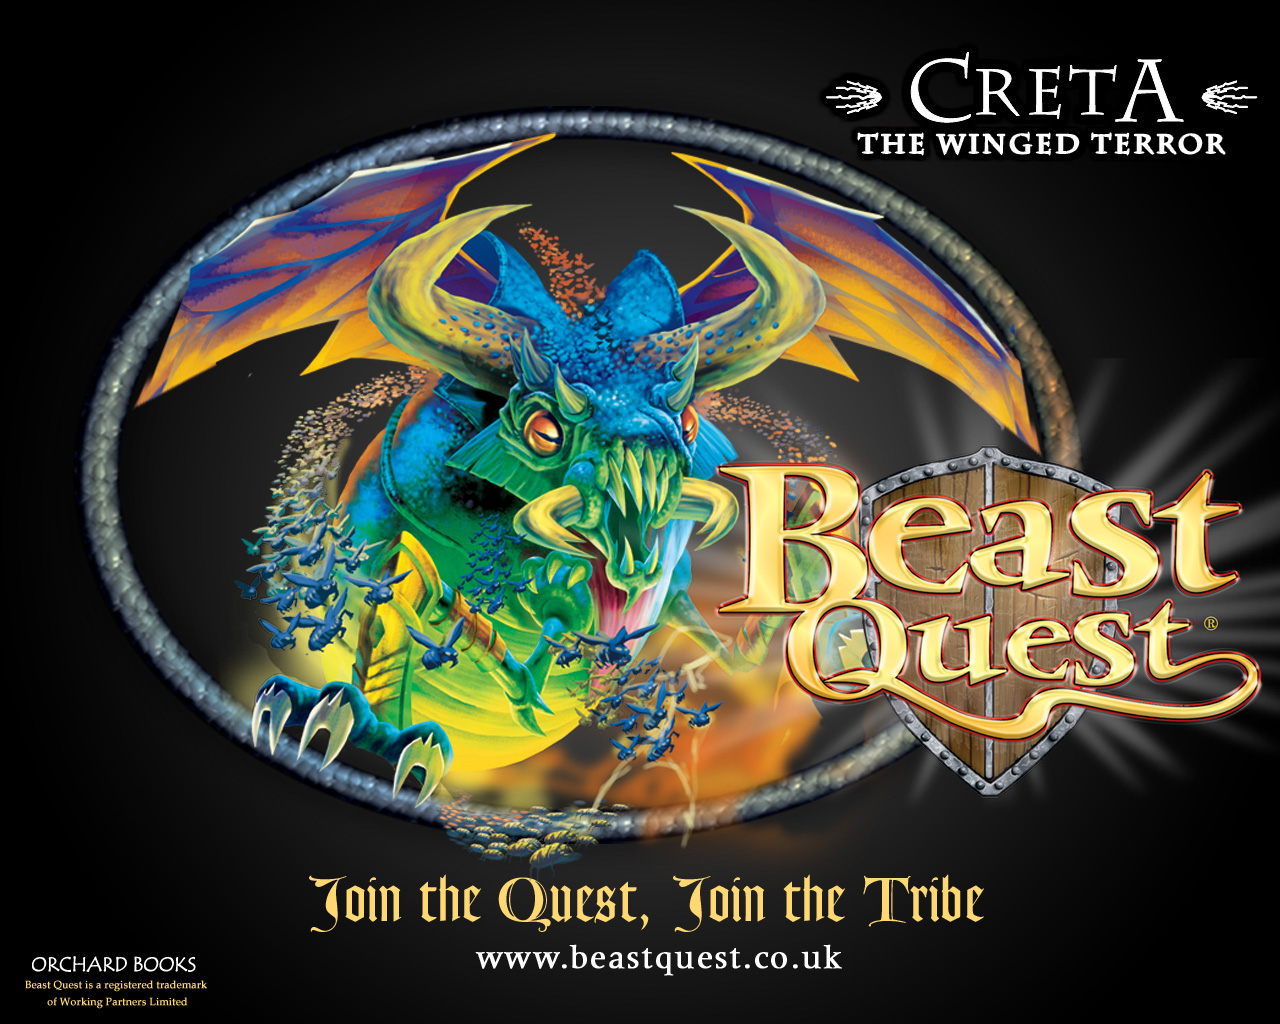 questing beast wallpaper - photo #11